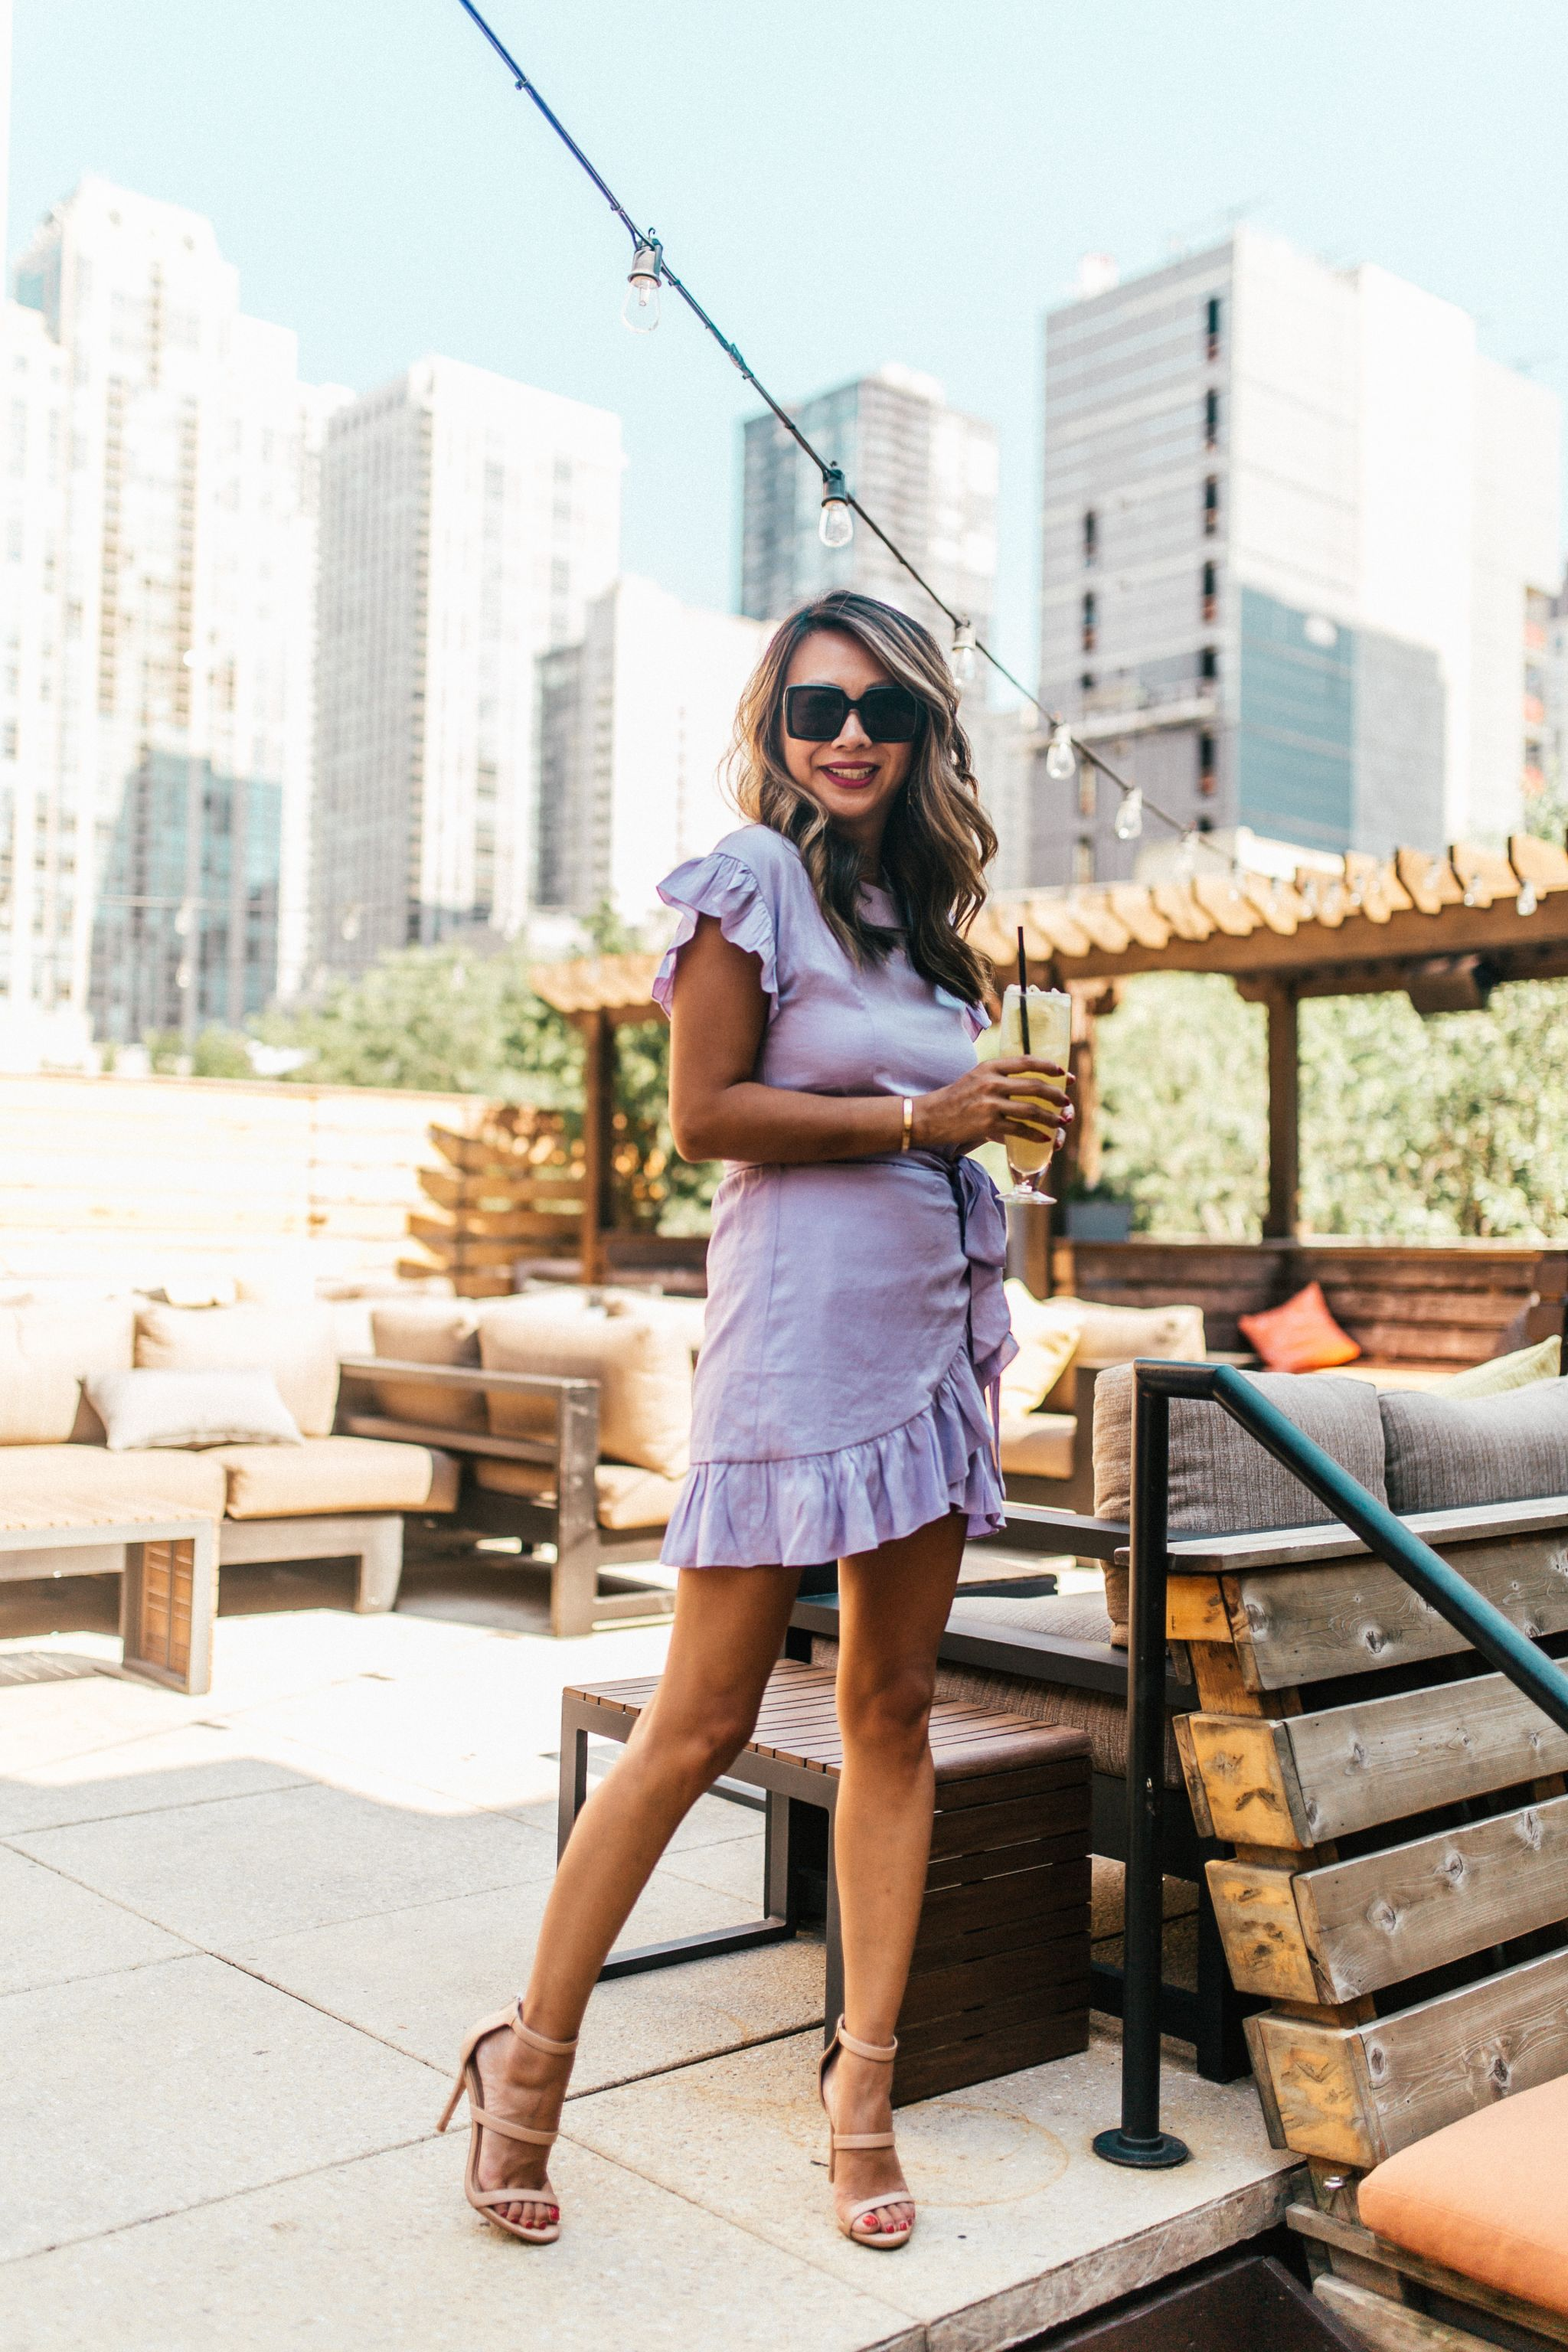 Zed451 Rooftop Bar, Best Rooftop in Chicago, Best hidden gem in Chicago, Jennifer Worman, Vici Collection wrap dress, Best Spot in Chicago